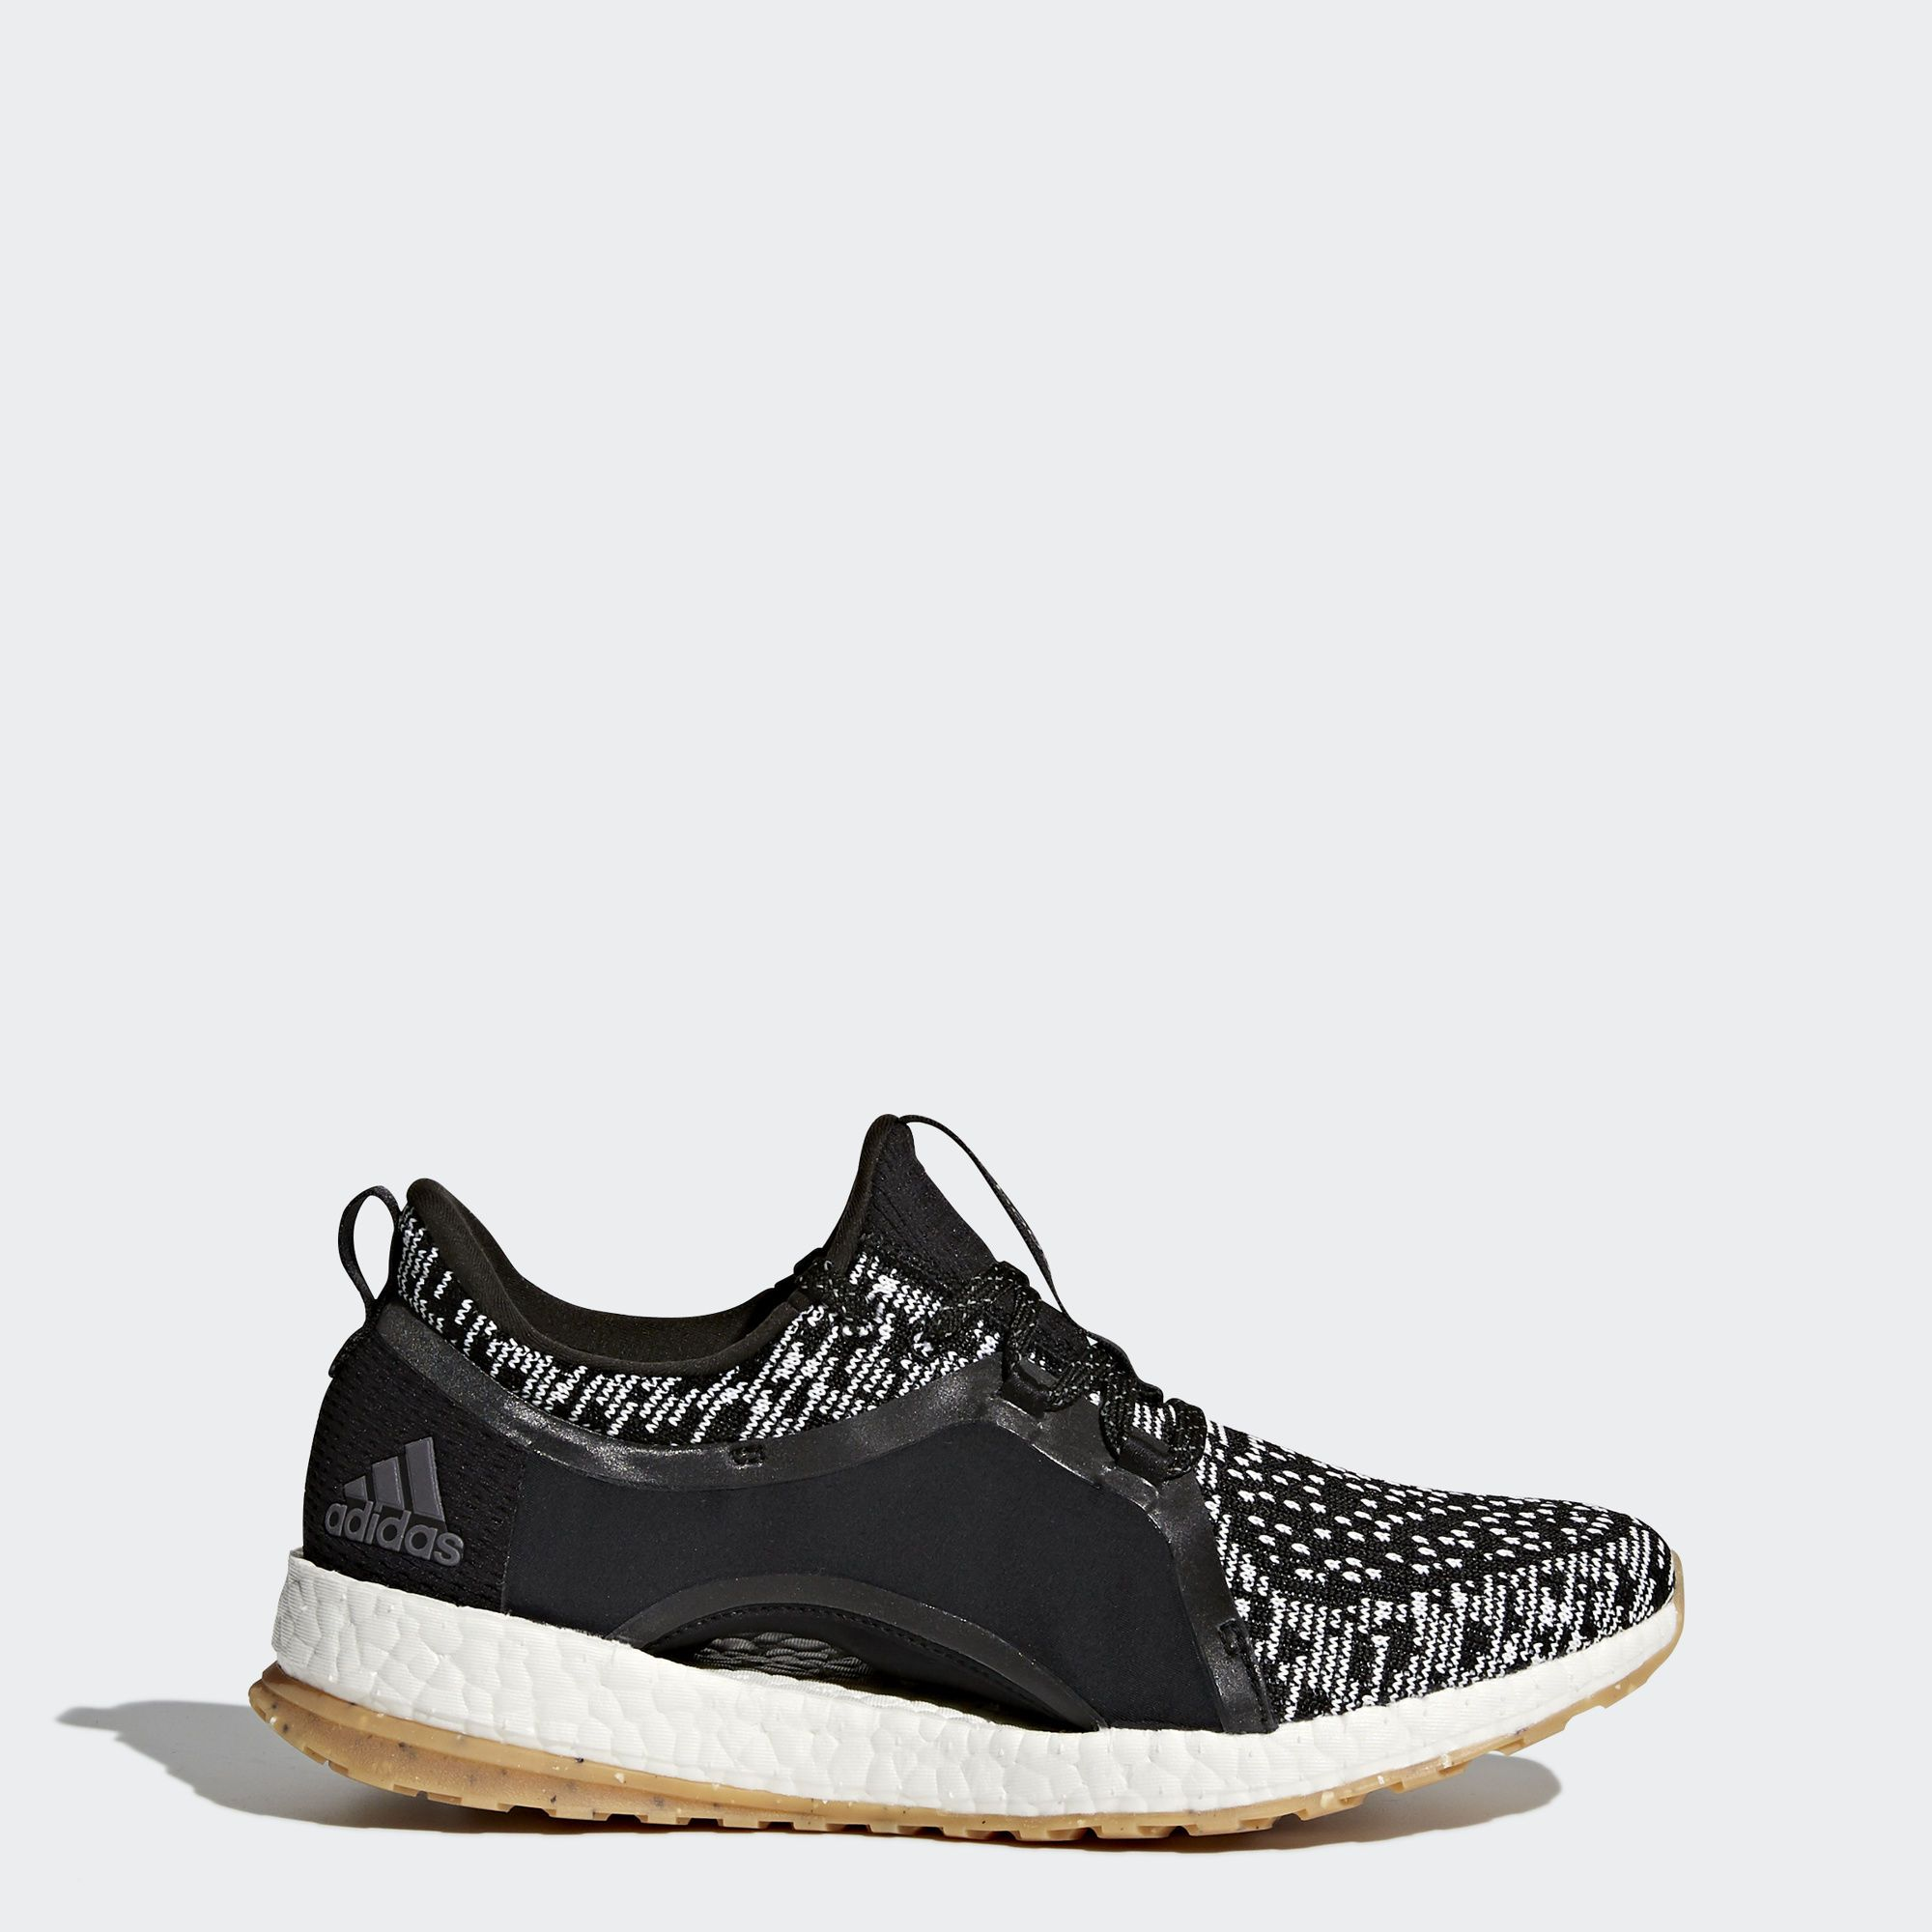 9710386a24c These running shoes combine an energy-returning midsole with an all-terrain  outsole for a light ride that knows no bounds. The shoes  women s-specific  ...